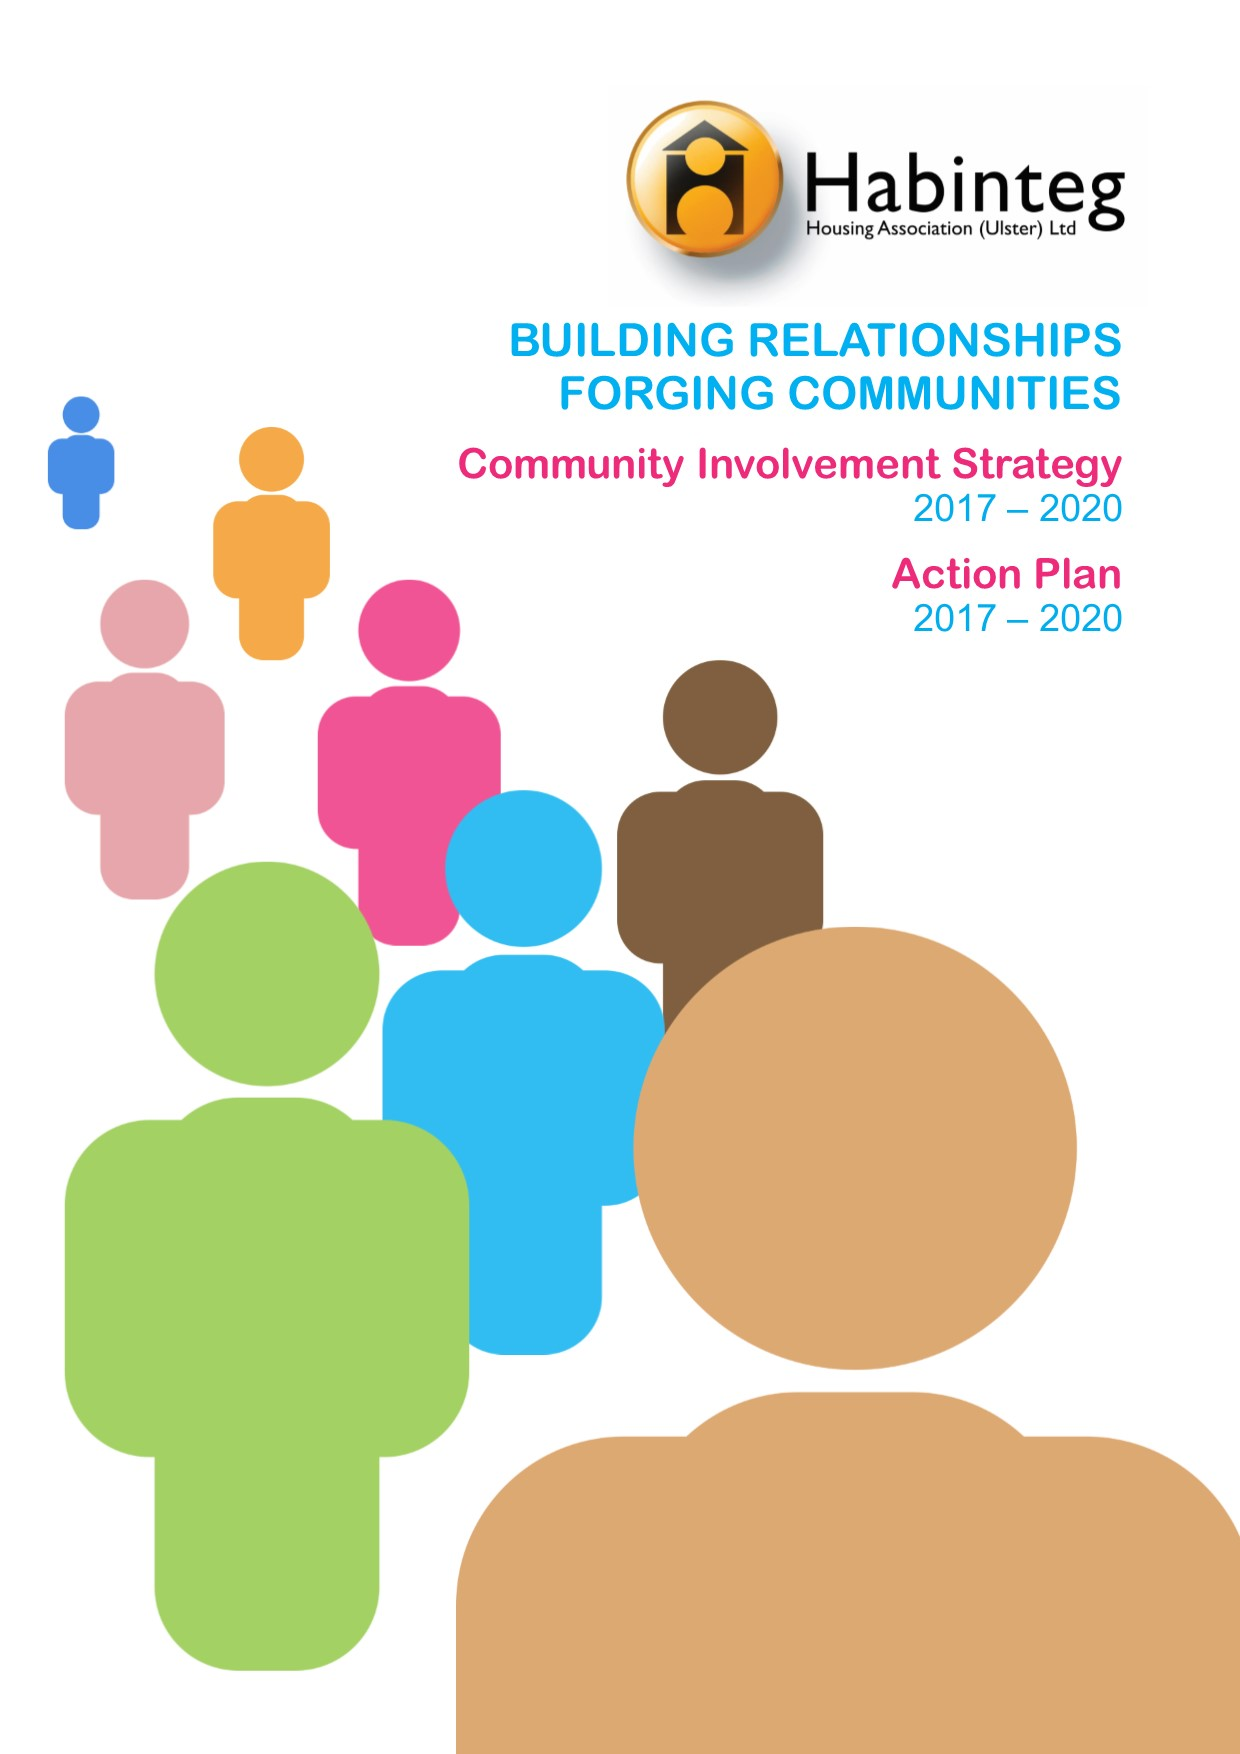 We have launched our Community Involvement Strategy